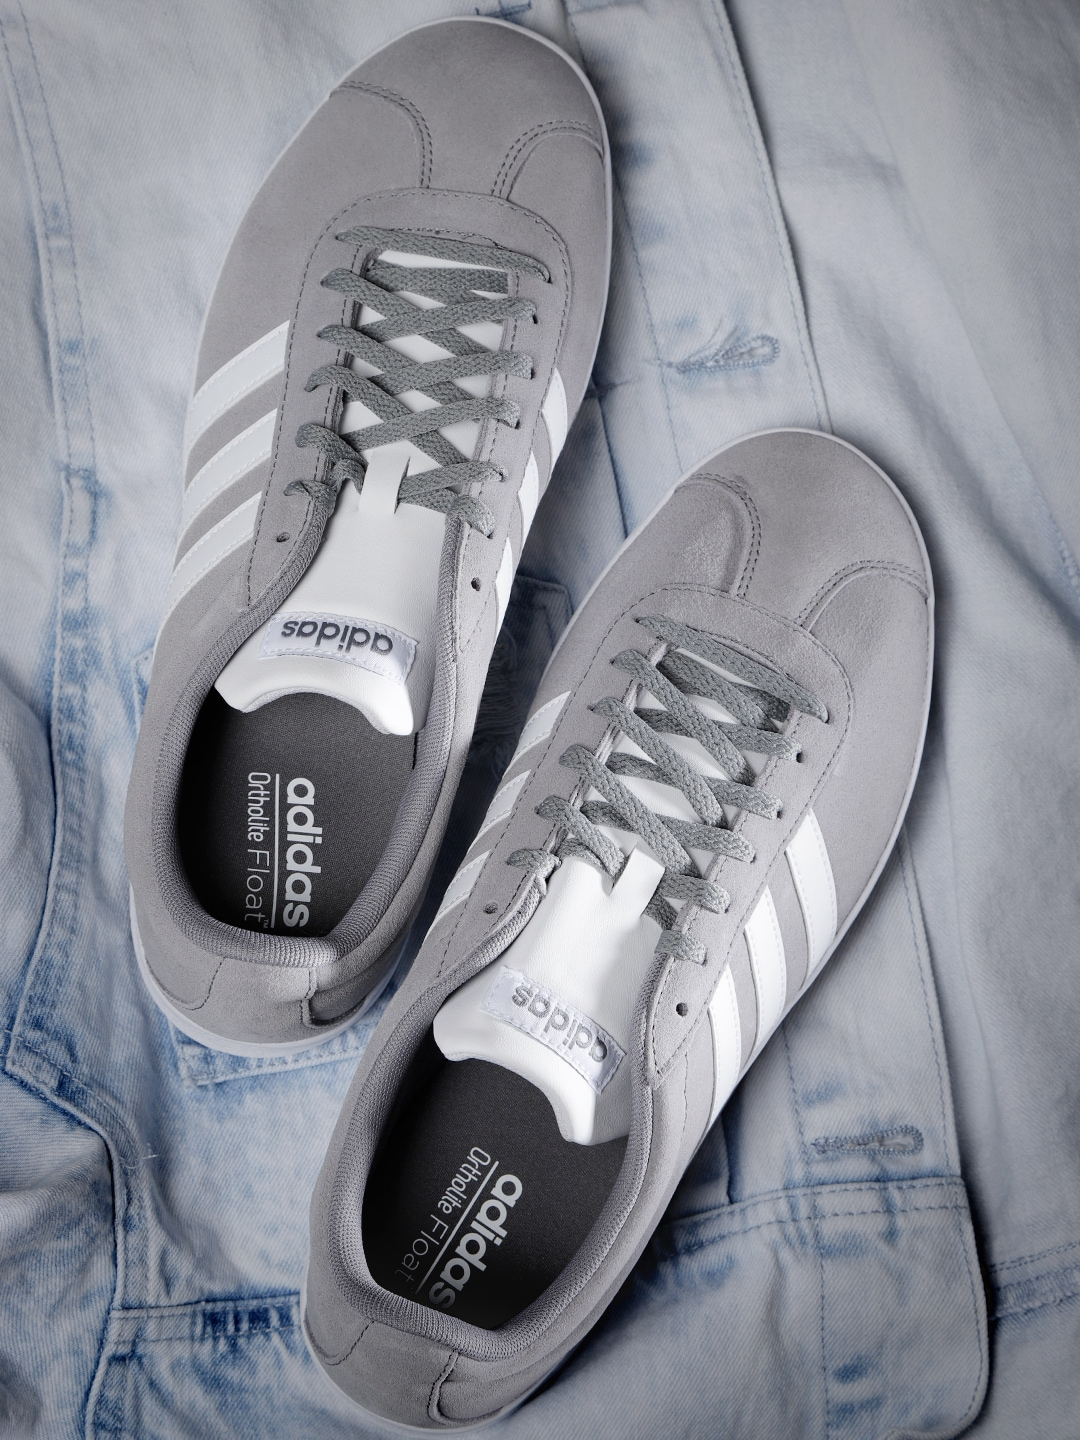 48f055b40ea Adidas Shoes - Buy Adidas Shoes for Men   Women Online - Myntra